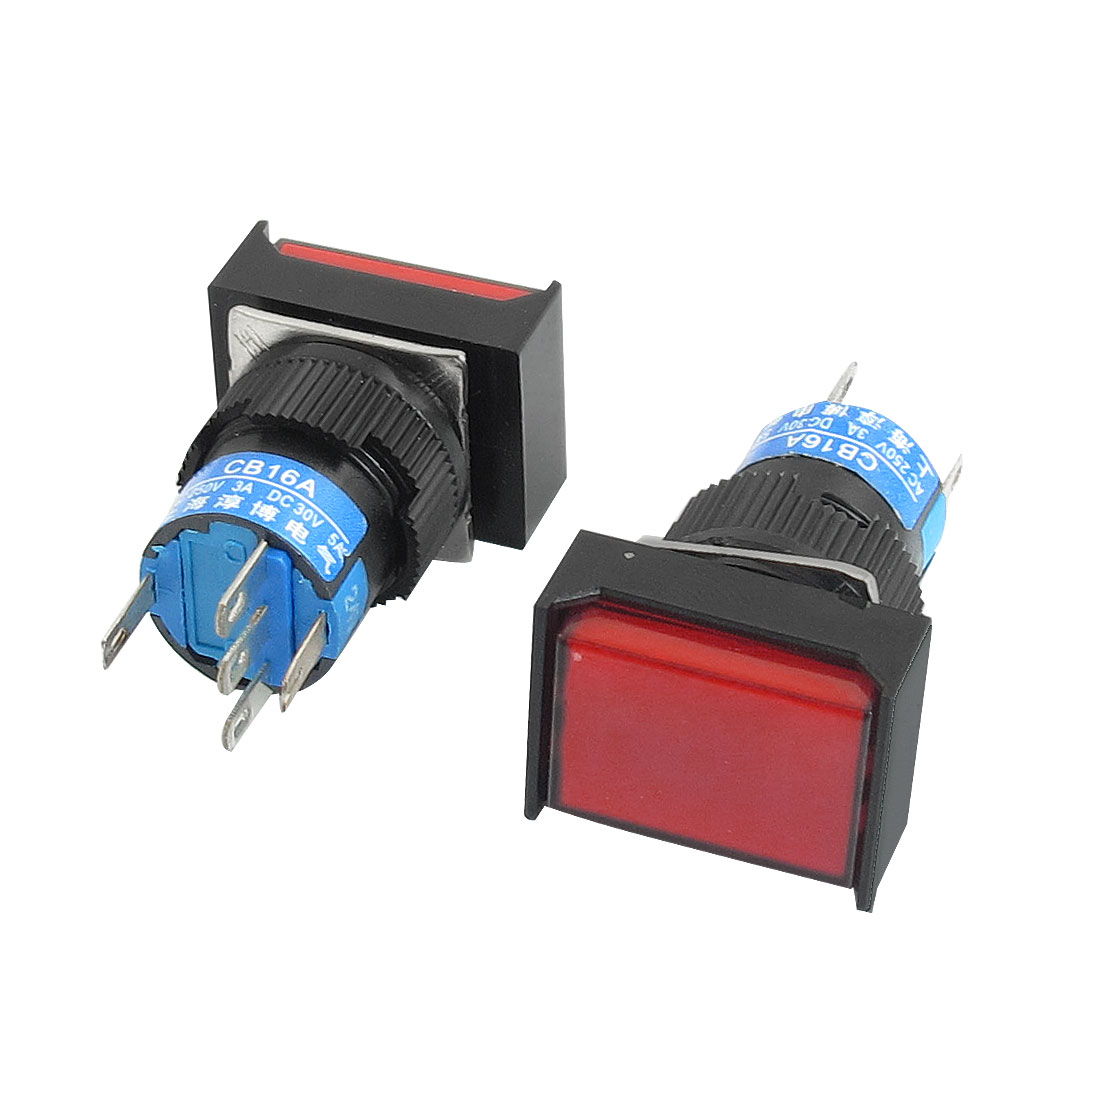 2Pcs-5-Terminals-Red-Rectangle-Momentary-Pushbutton-Switch-DC-24V-Lamp